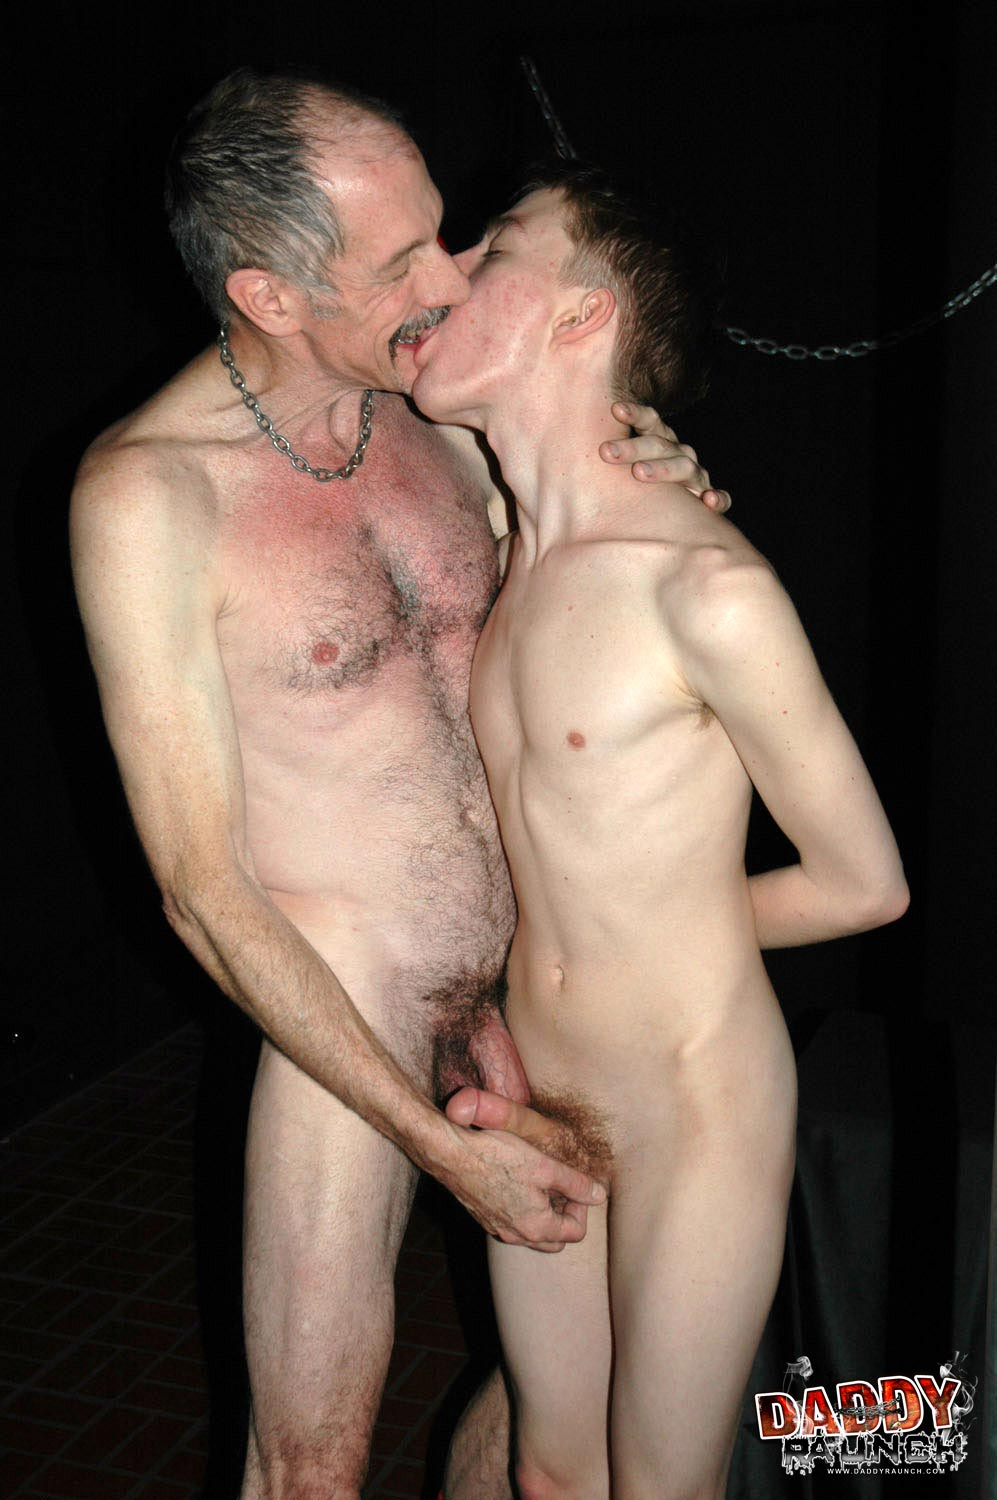 Father fucking son in gay porn